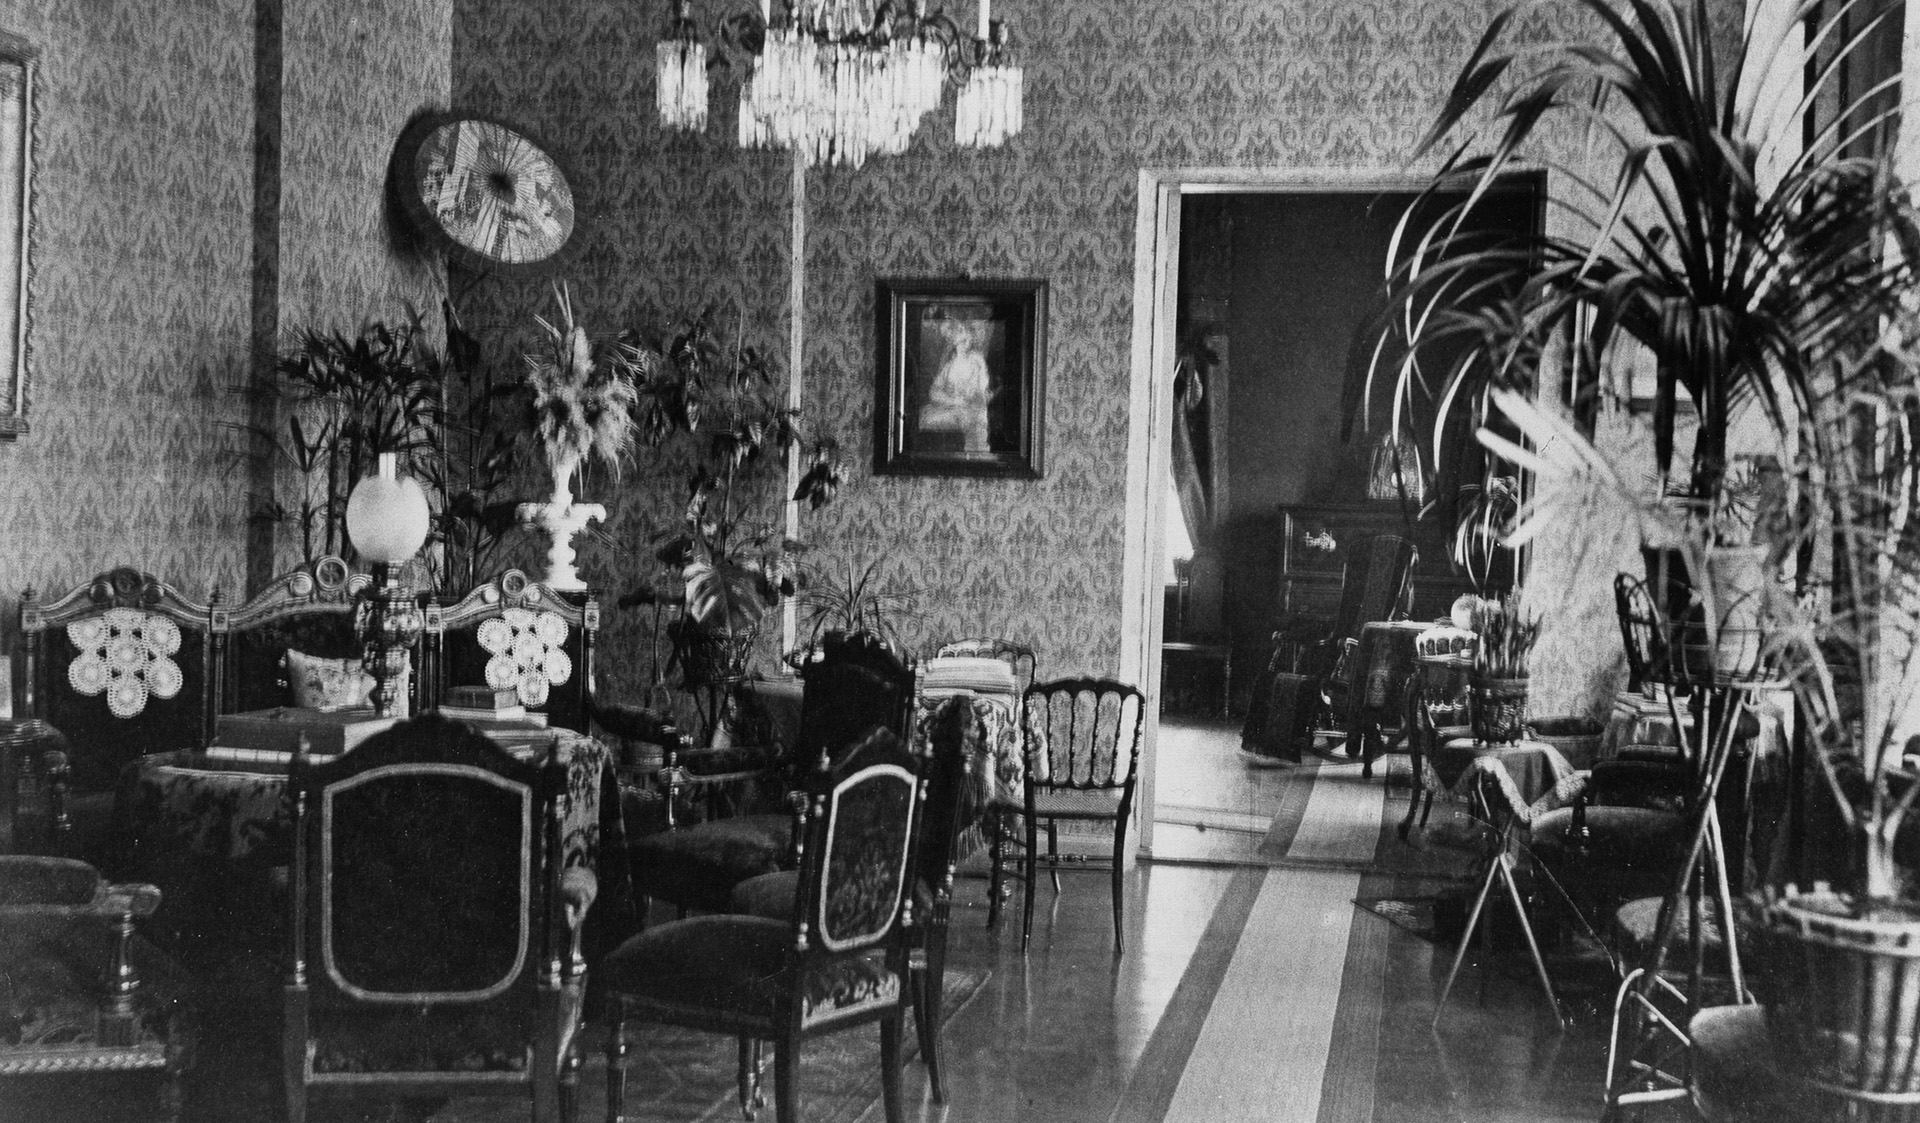 The home of astronomy professor Anders Donner, view of the hall. Photo: Helsinki City Museum / CC BY 4.0